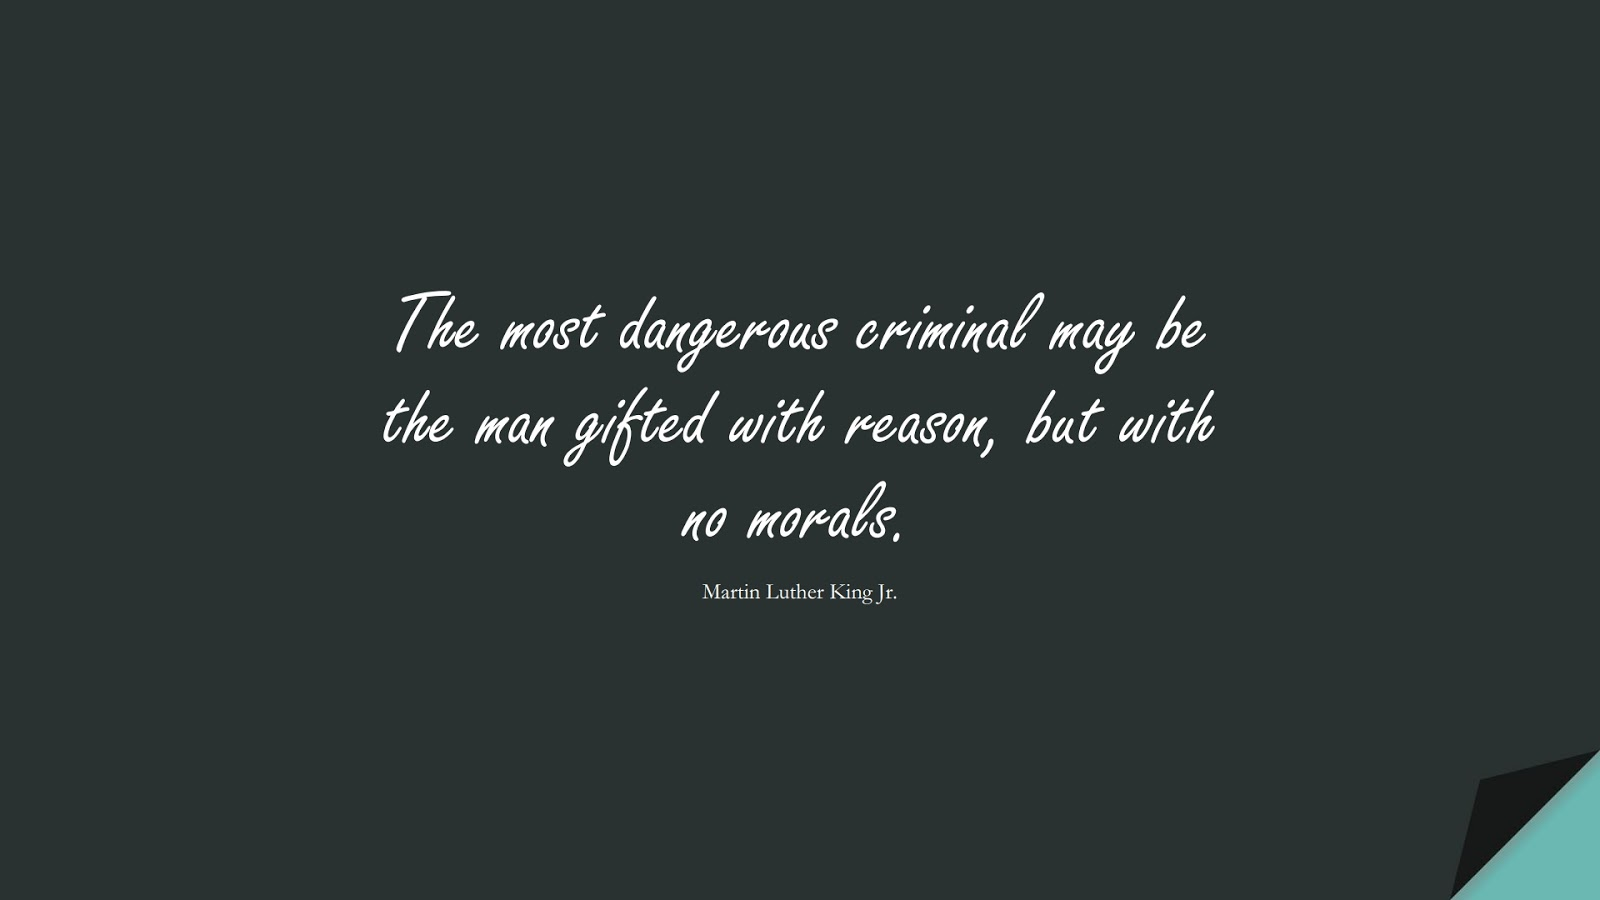 The most dangerous criminal may be the man gifted with reason, but with no morals. (Martin Luther King Jr.);  #MartinLutherKingJrQuotes